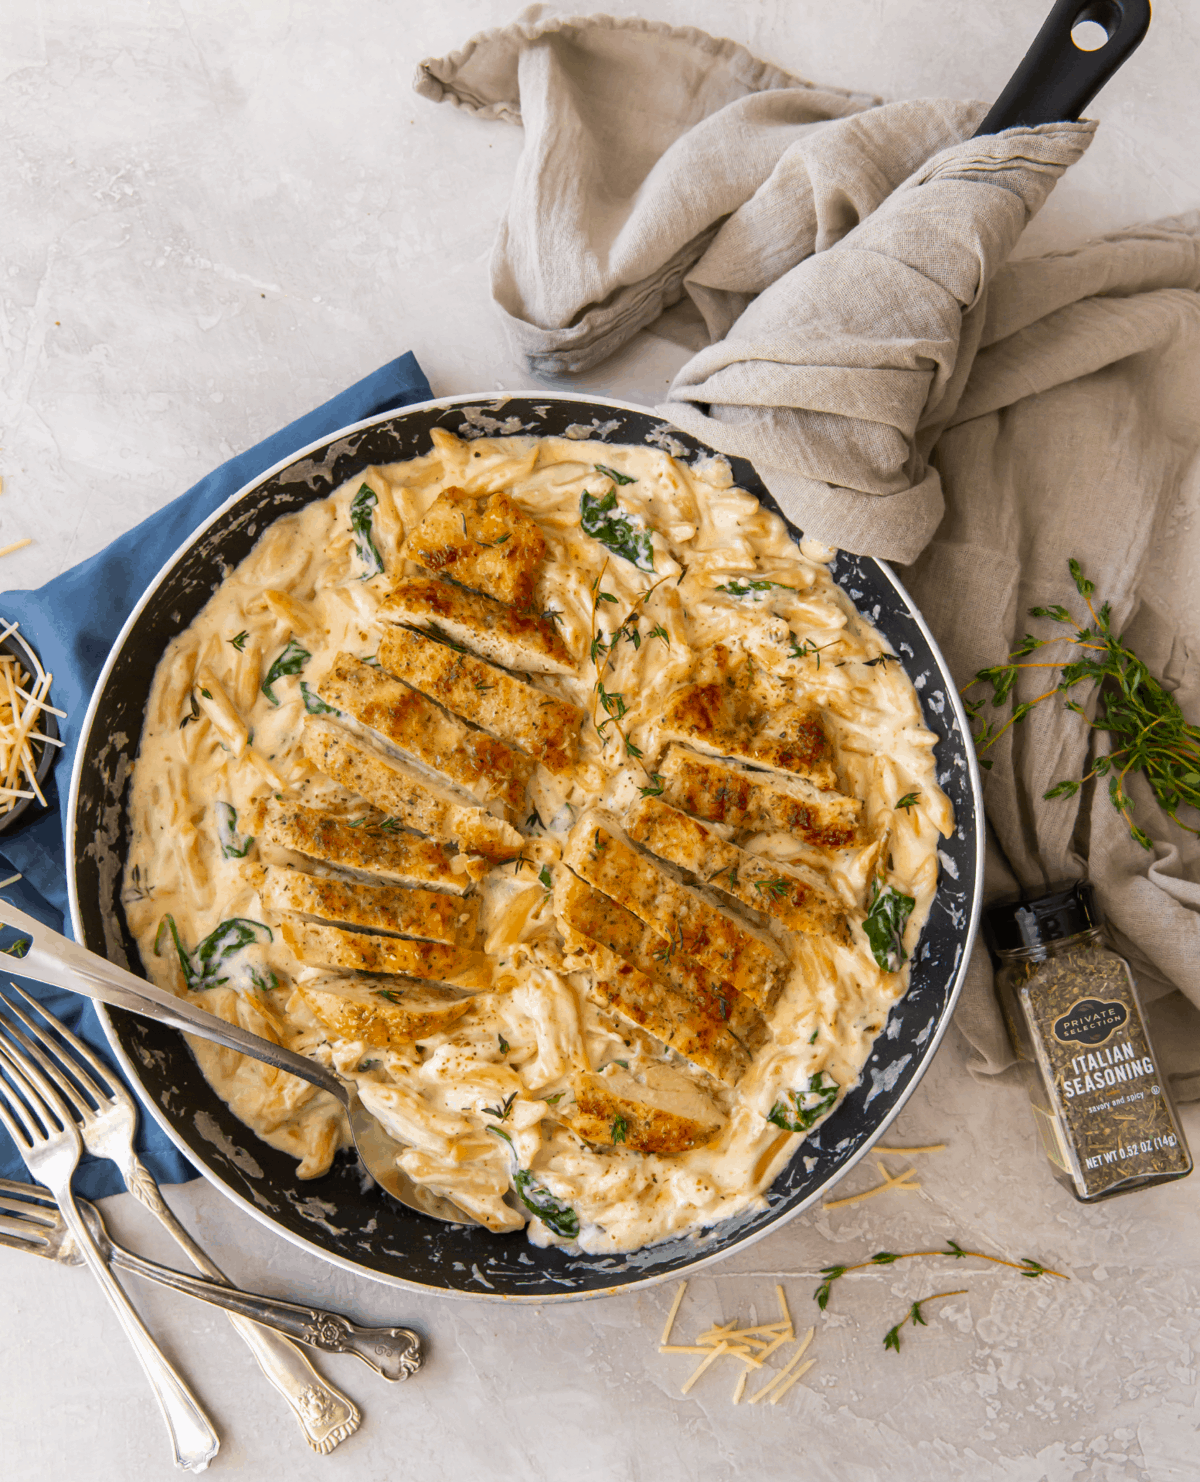 Chicken on a bed of pasta and alfredo sauce in a black pan